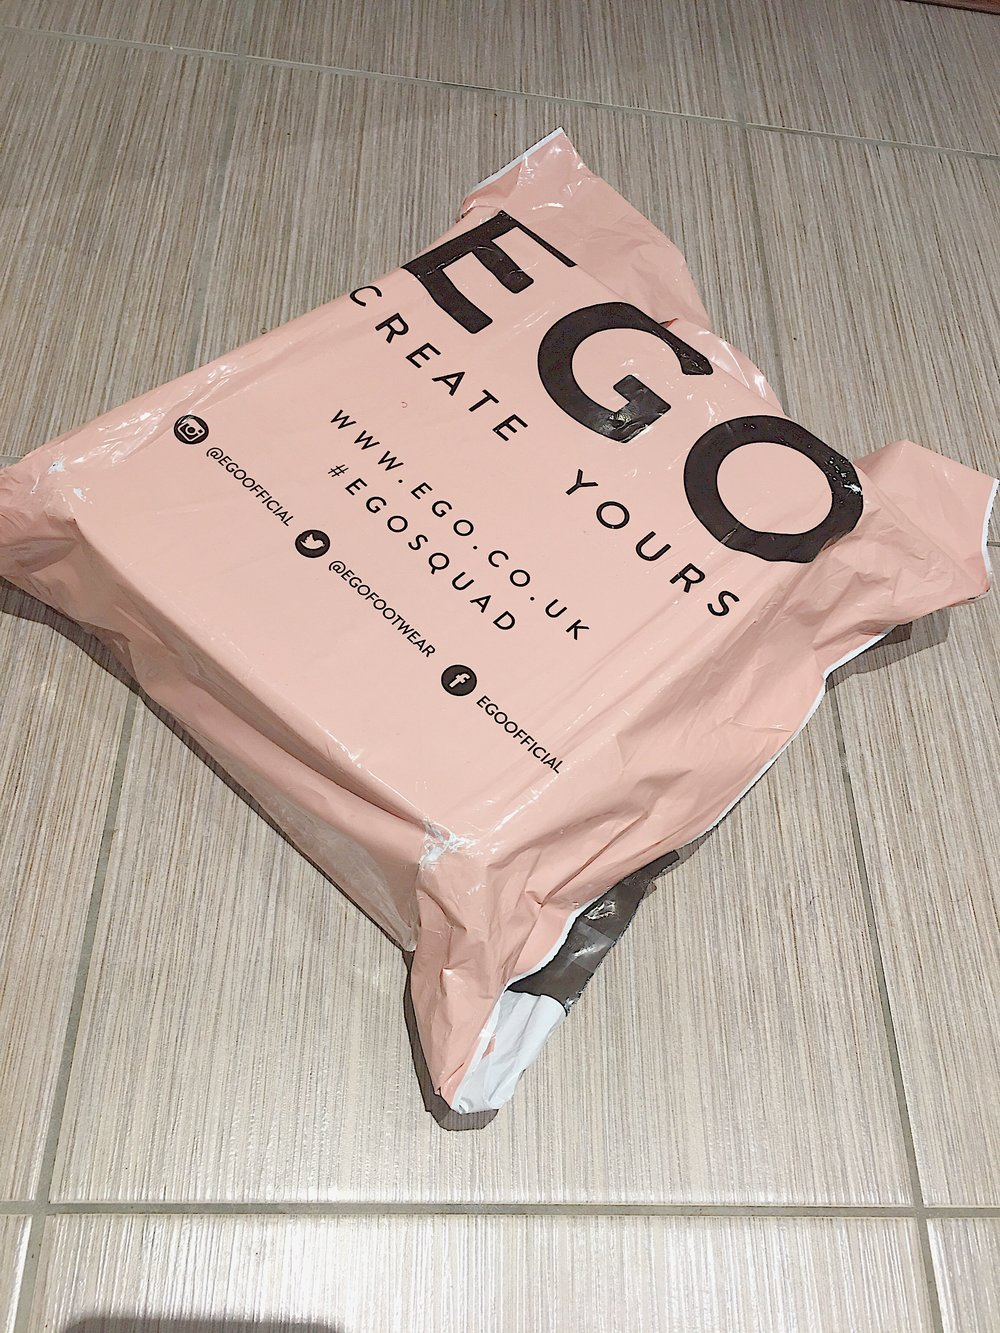 A few days ago Ego official shared their 50% off code on Instagram. The discount was on selected styles which is when this order was made. Originally the item was £35 and I bought them for half the price. Bargain, right?